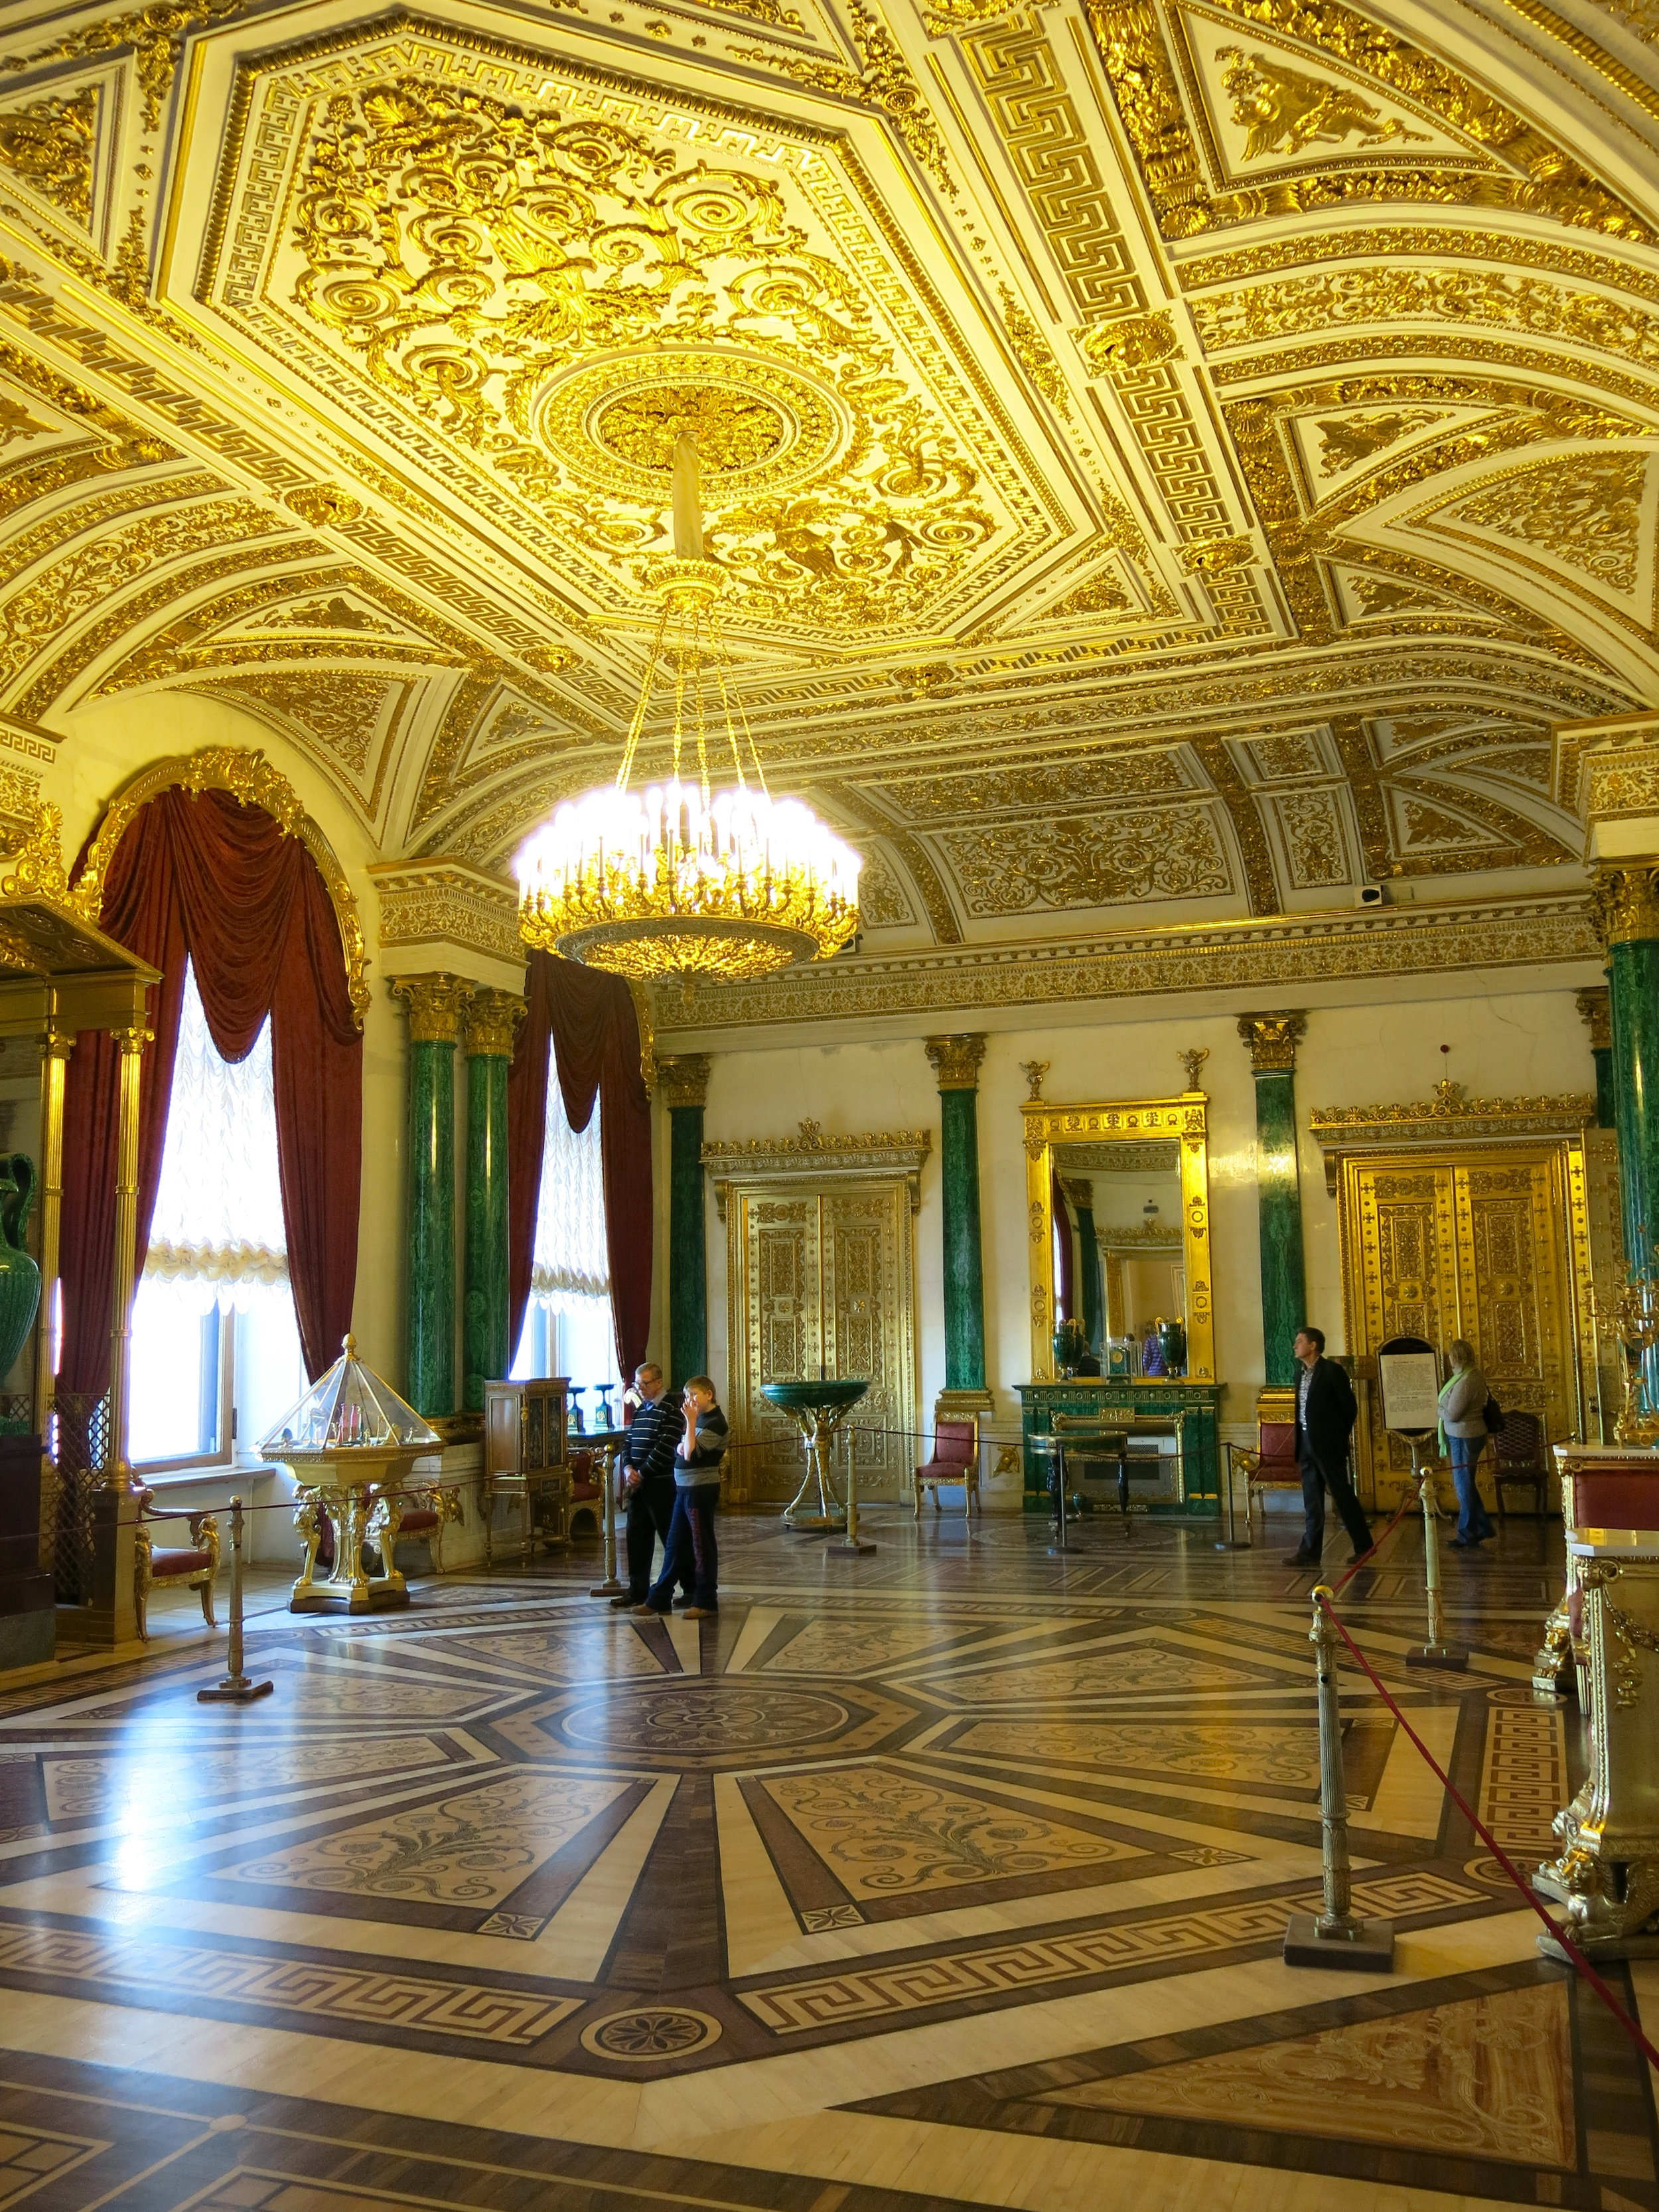 The Malachite Room and its green columns made of malachite